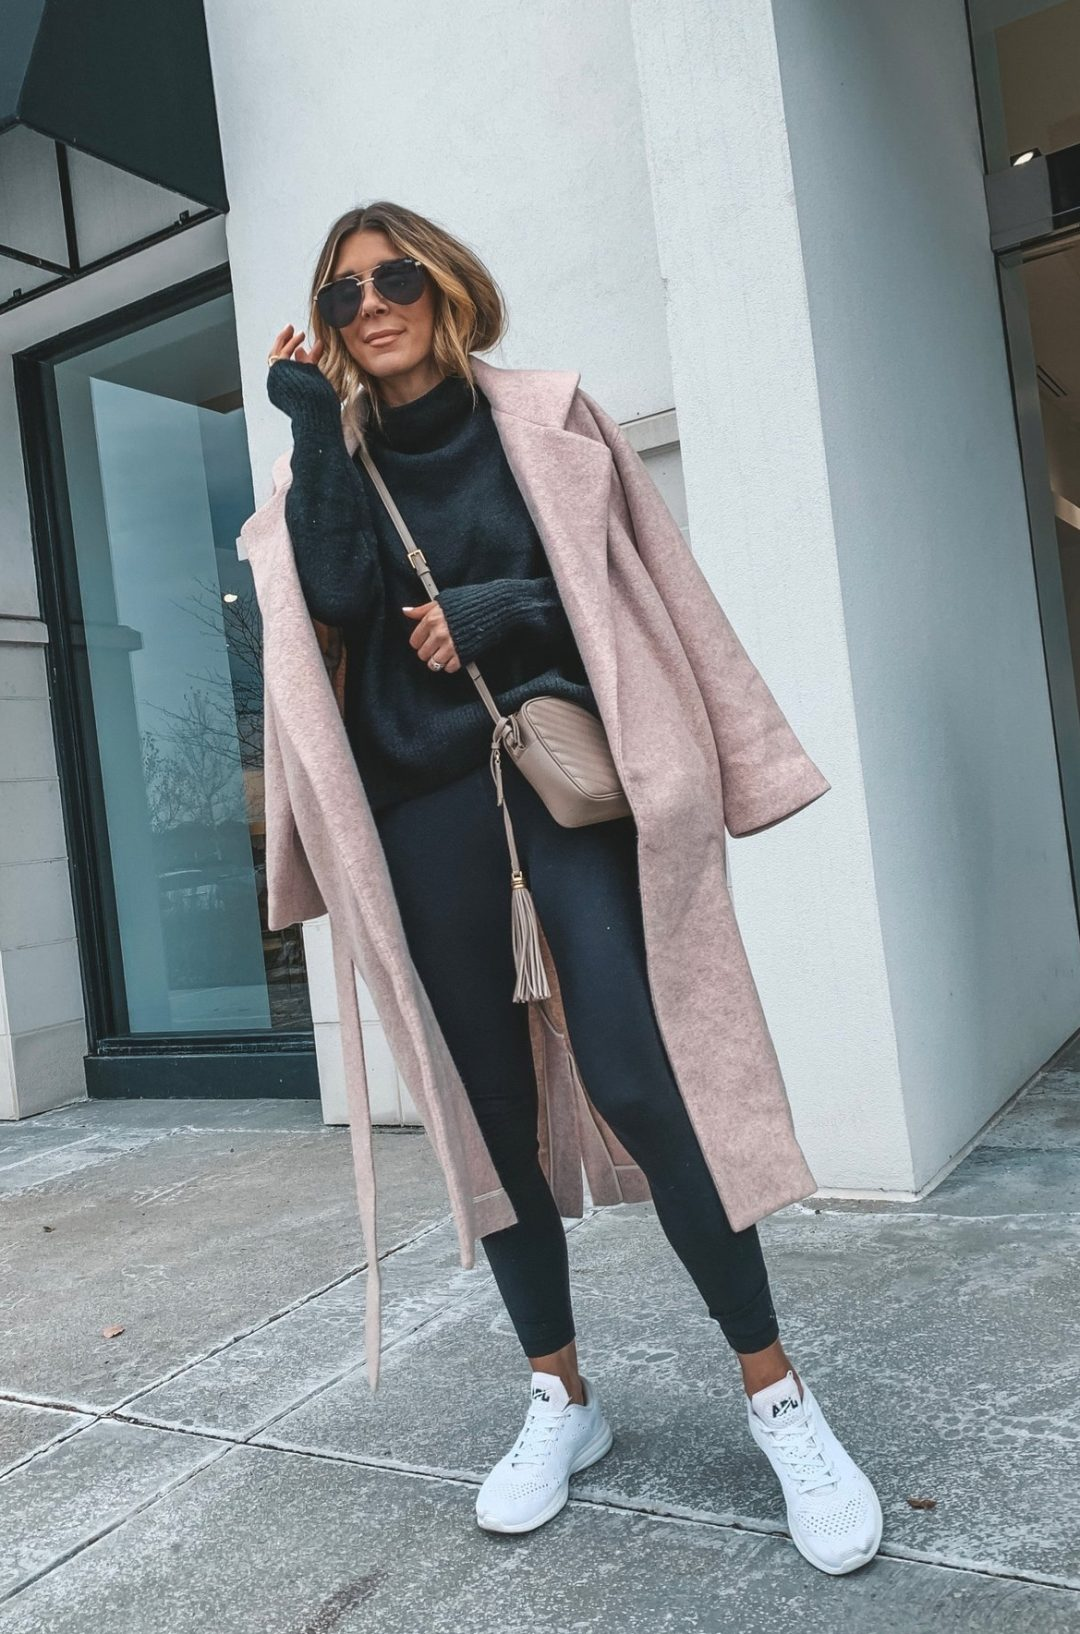 Cute black leggings outfit ideas - casual sporty outfits